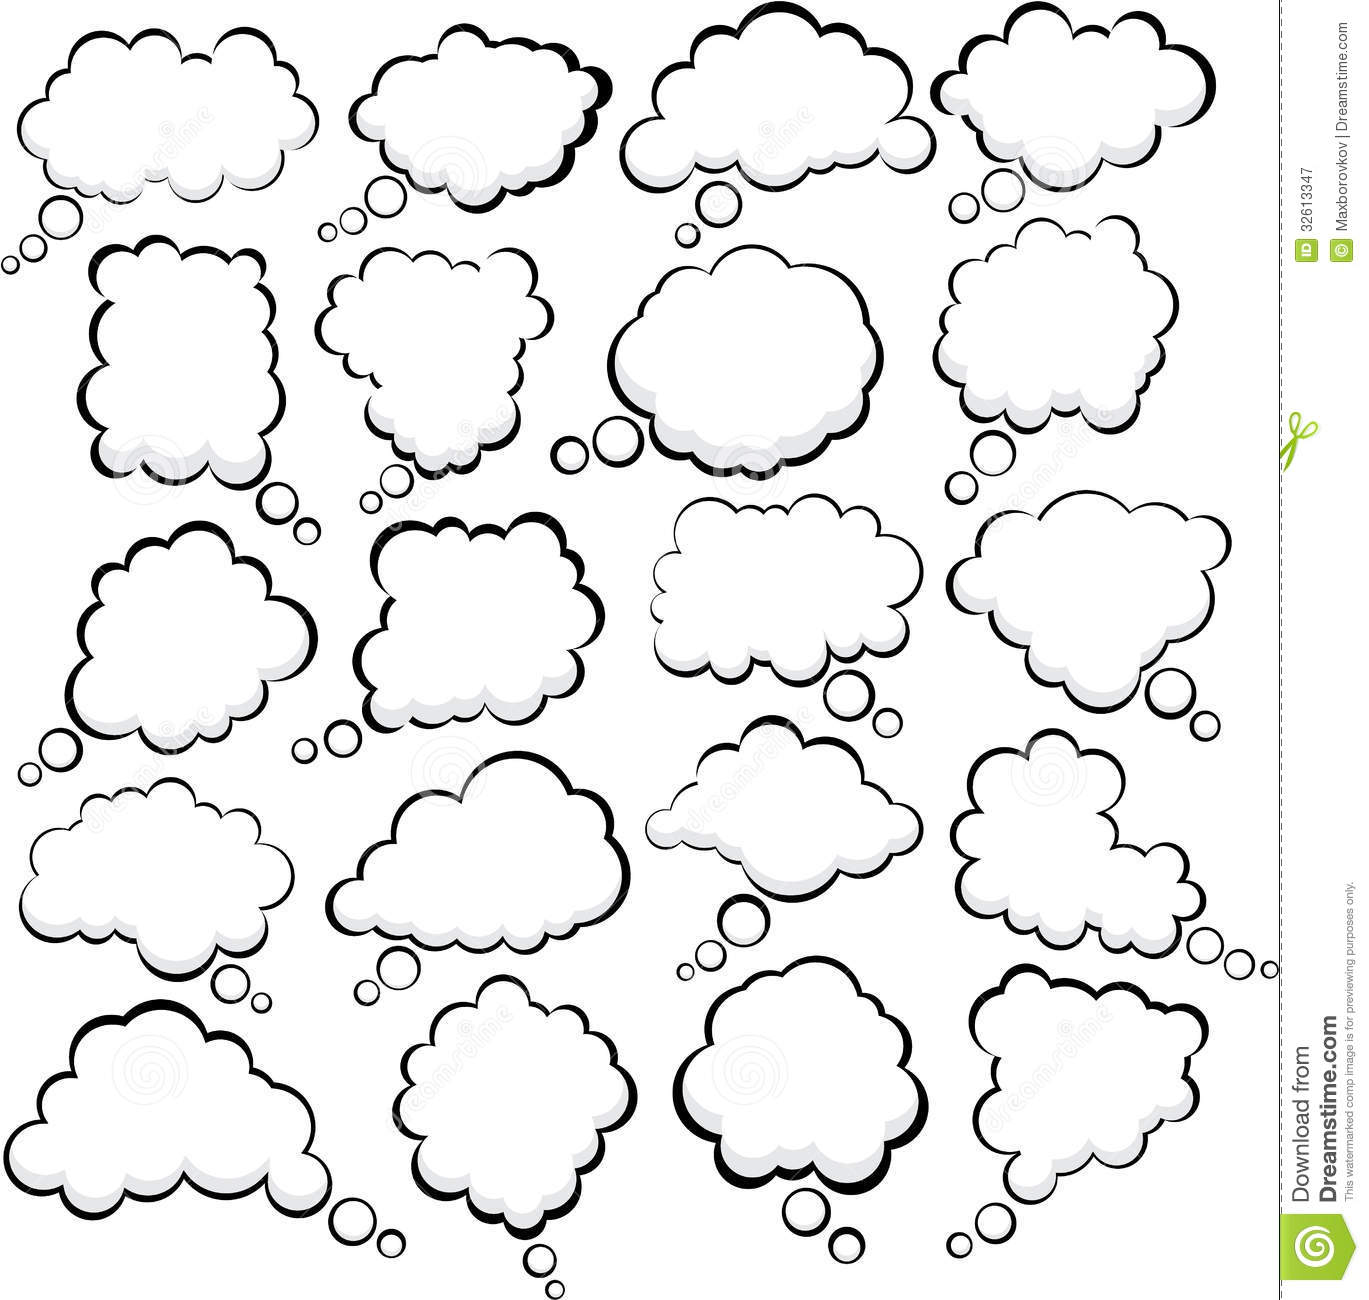 Comic Cloud Speech Bubbles. Royalty Free Stock Photography